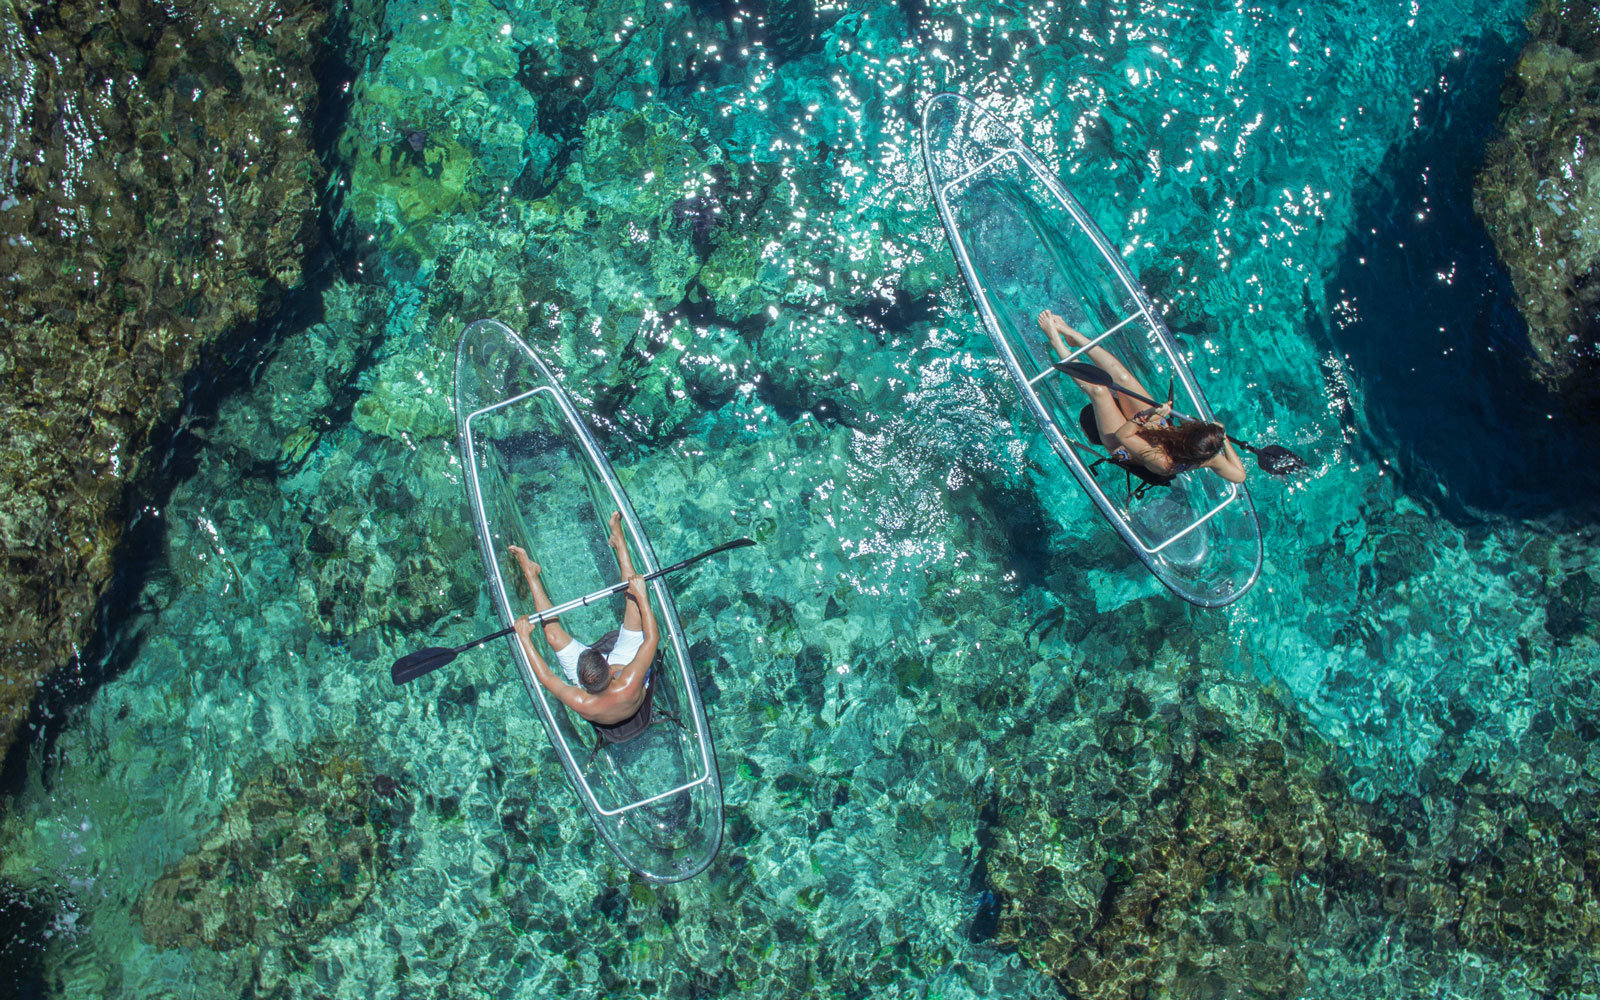 Iphone X Wallpaper Coral Reef These Transparent Kayaks Give You Incredible Views Of The